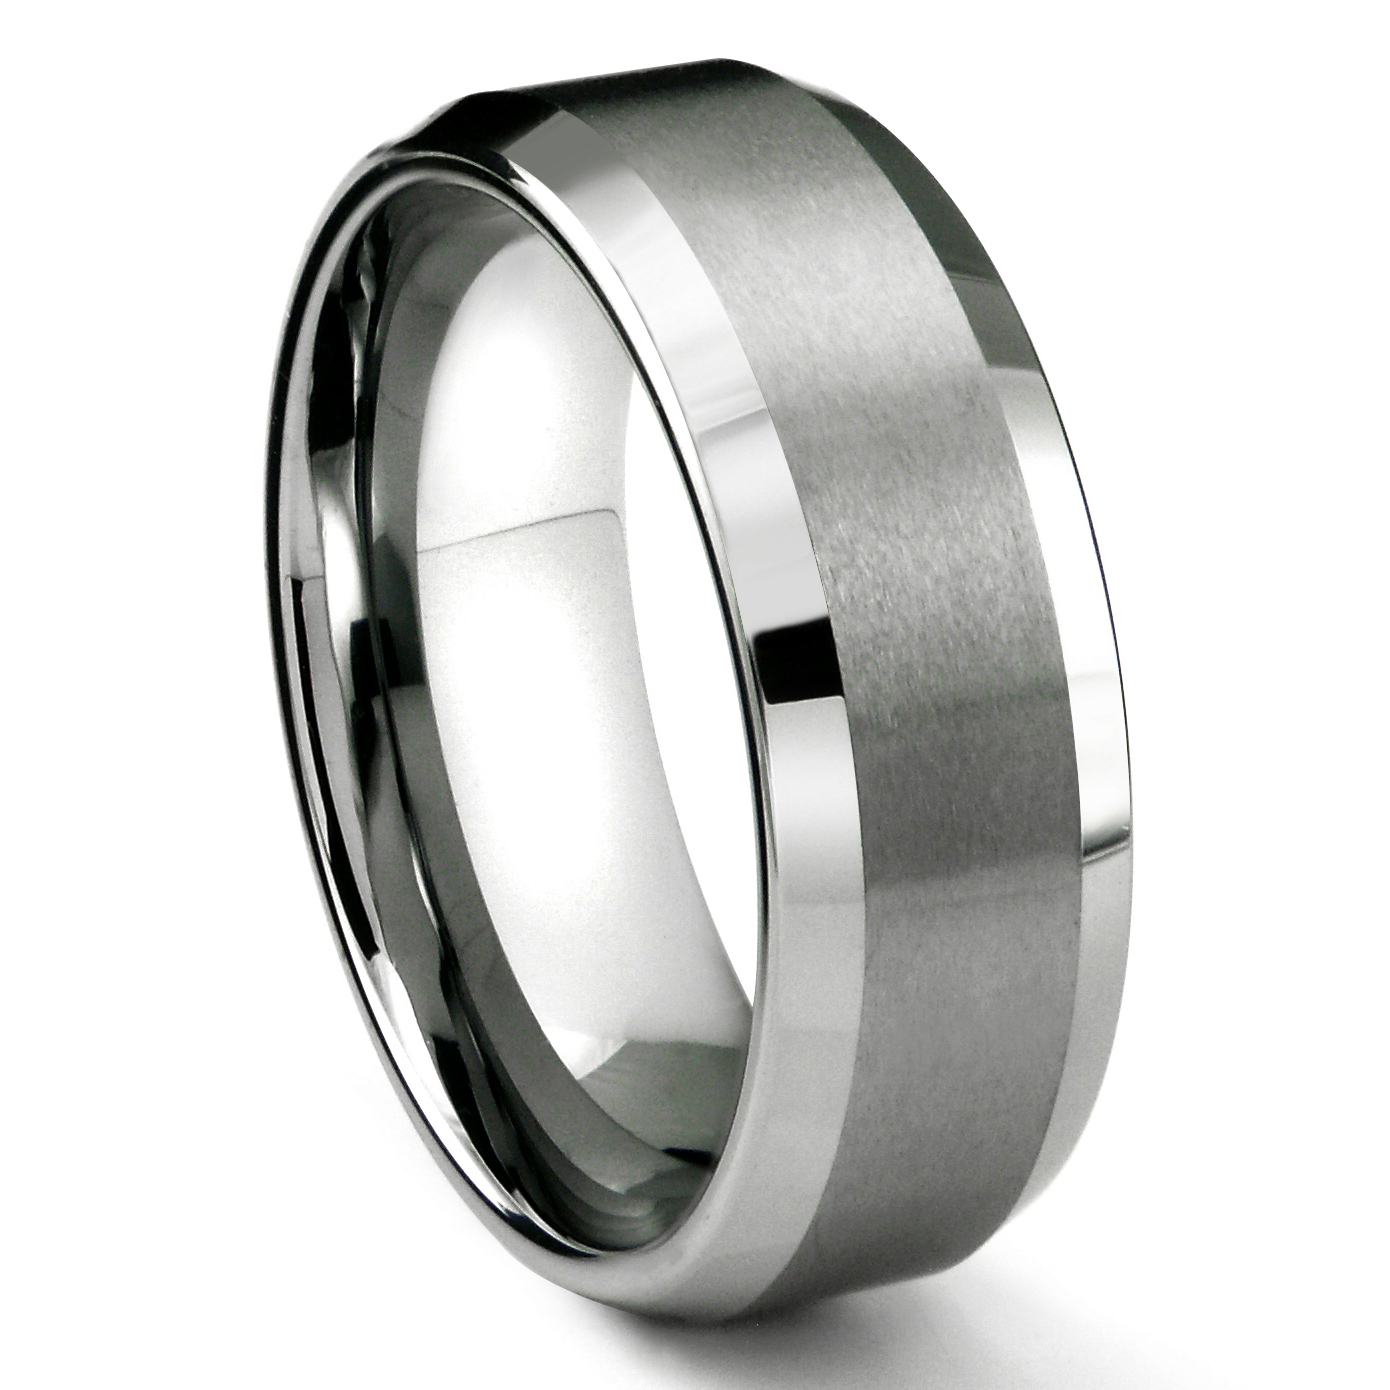 mens nice wedding band comfort rings bands fit